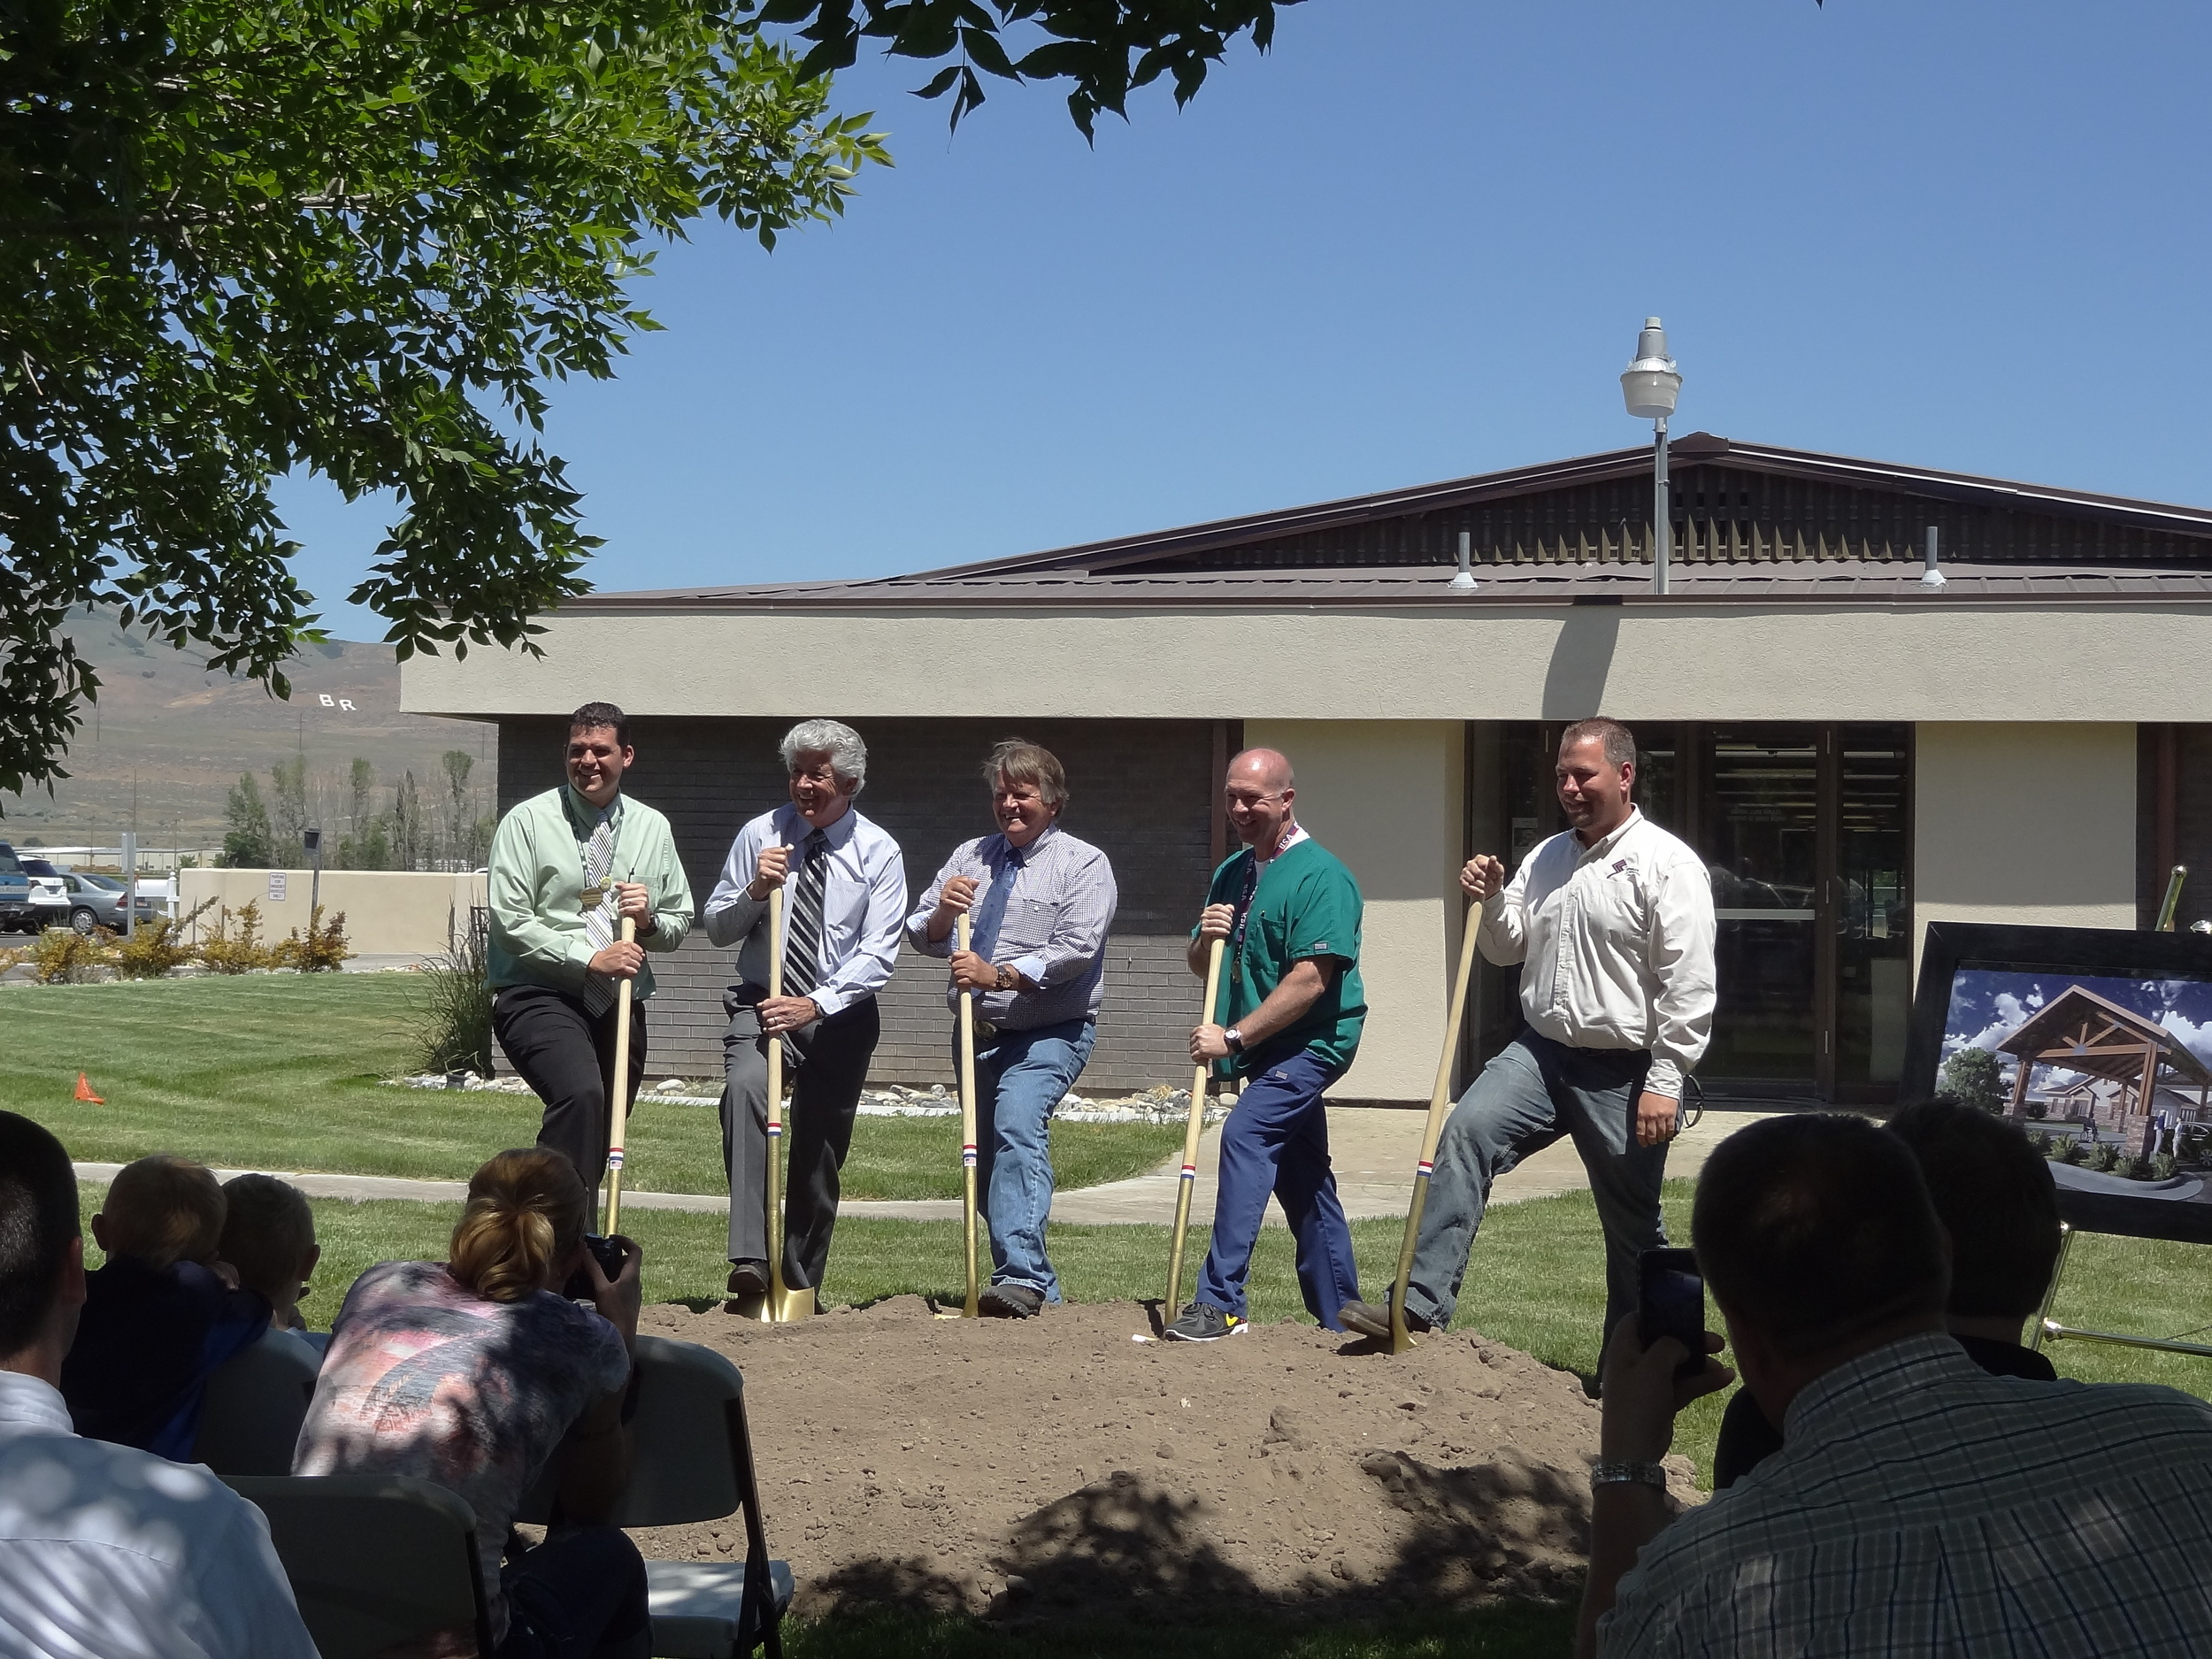 Turning shovels of dirt, from left to right: Brandon Sturdevant, Administrator of Bear River Valley Care Center, Gary Kelso, President and CEO of Mission Health Services, Mayor Roger Fridal, the director of nursing for Bear River Valley Care Center, and Cole Knighton, Project Manager for Spindler Construction